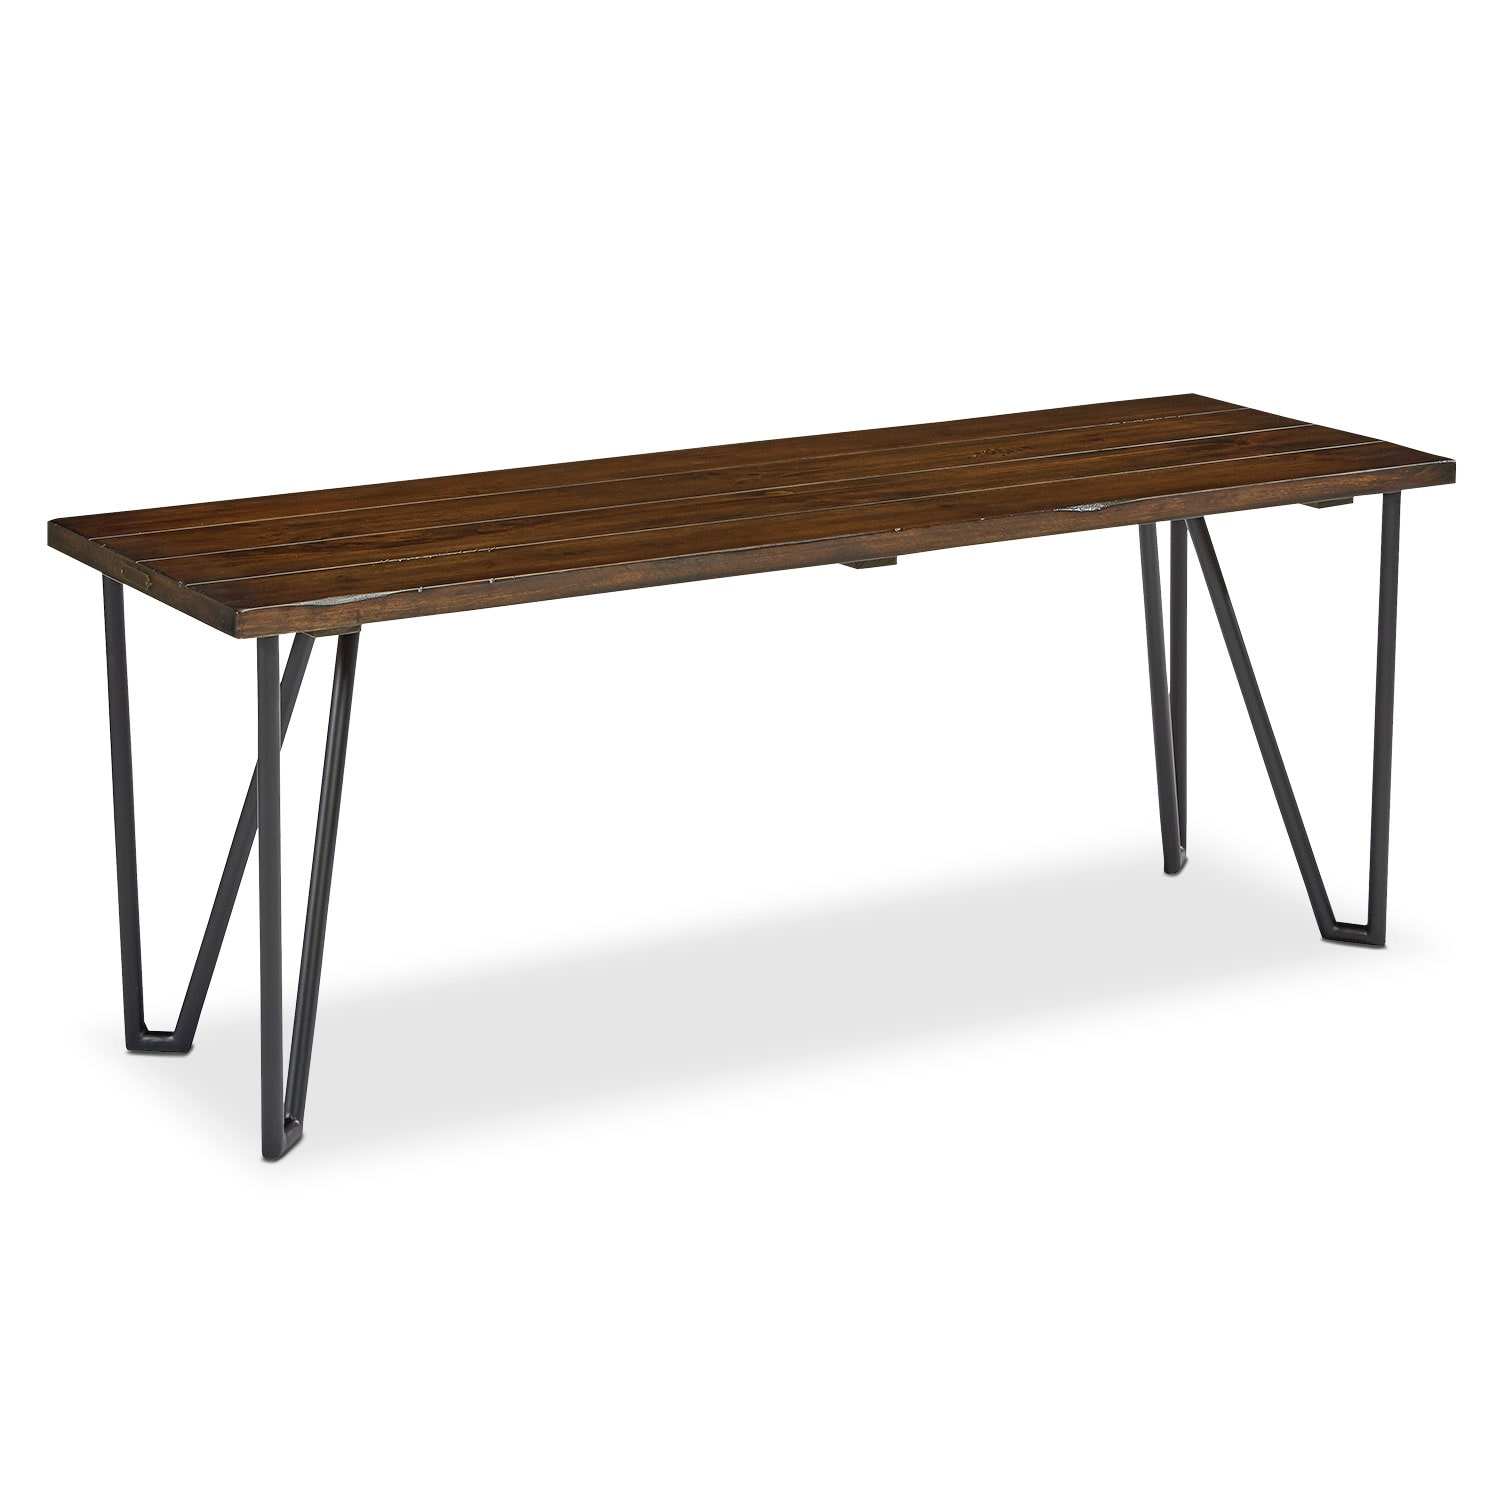 "Dining Room Furniture - 70"" Boho Hairpin Bench"